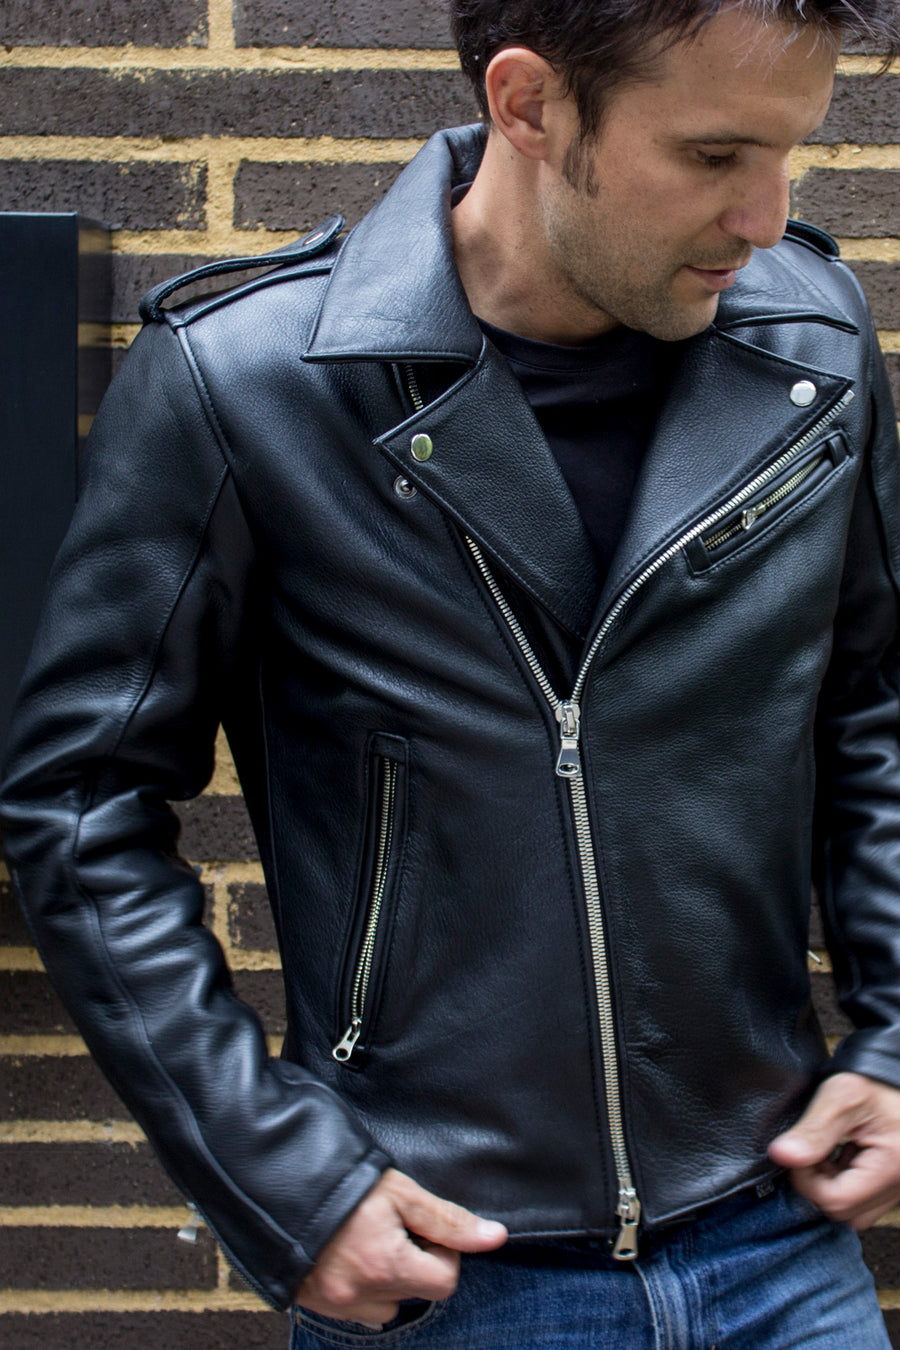 Rebel UKR Classic Biker Leather Jacket Leather - Black